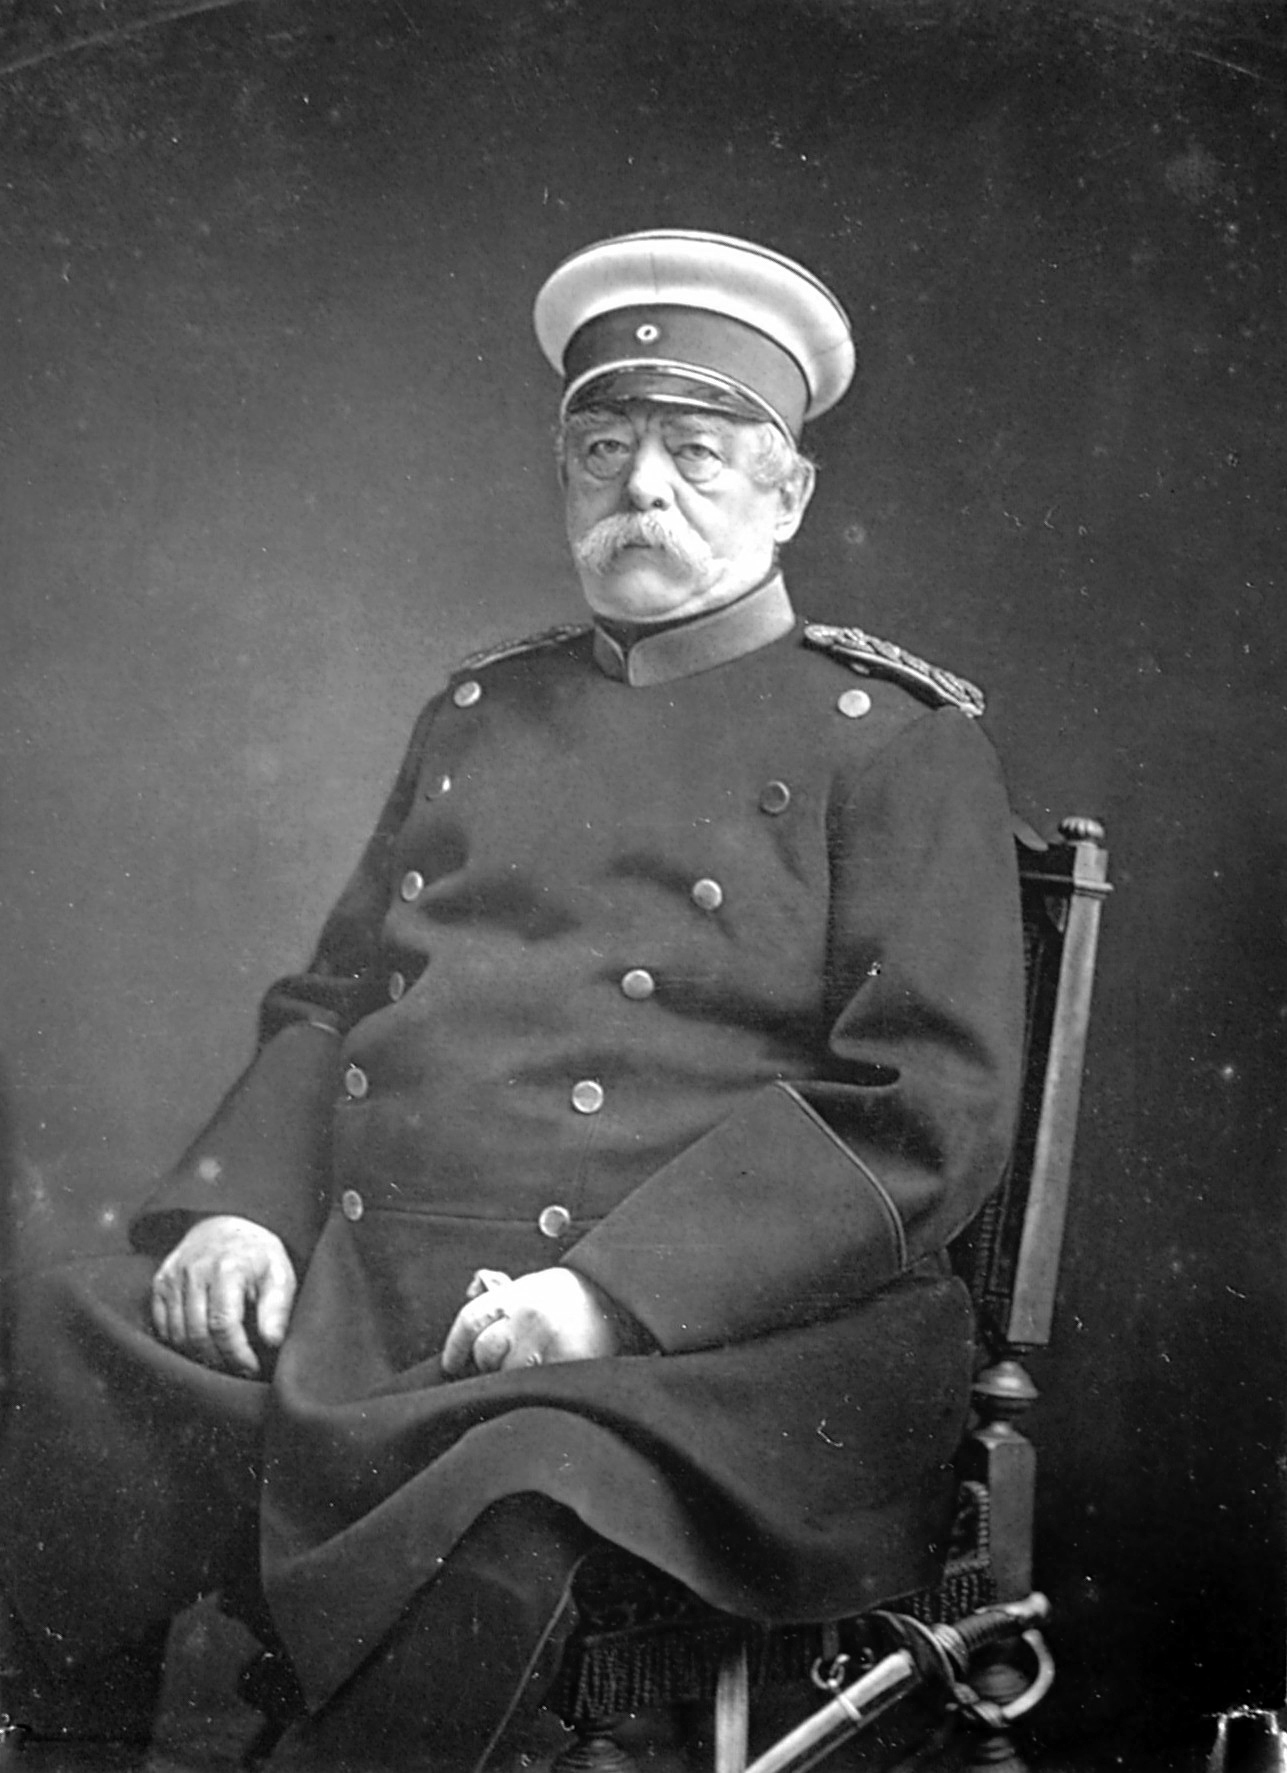 strong leadership of bismark unites the german states United states library of congress prints and photographs division  the devil  and the good man may cite scripture—for opposite purposes  german  leadership during world war i, epitomized by the supreme leader of the time,  kaiser  throne, wilhelm ii dismissed bismarck—the nation's later idol, a prudent  diplomat in.